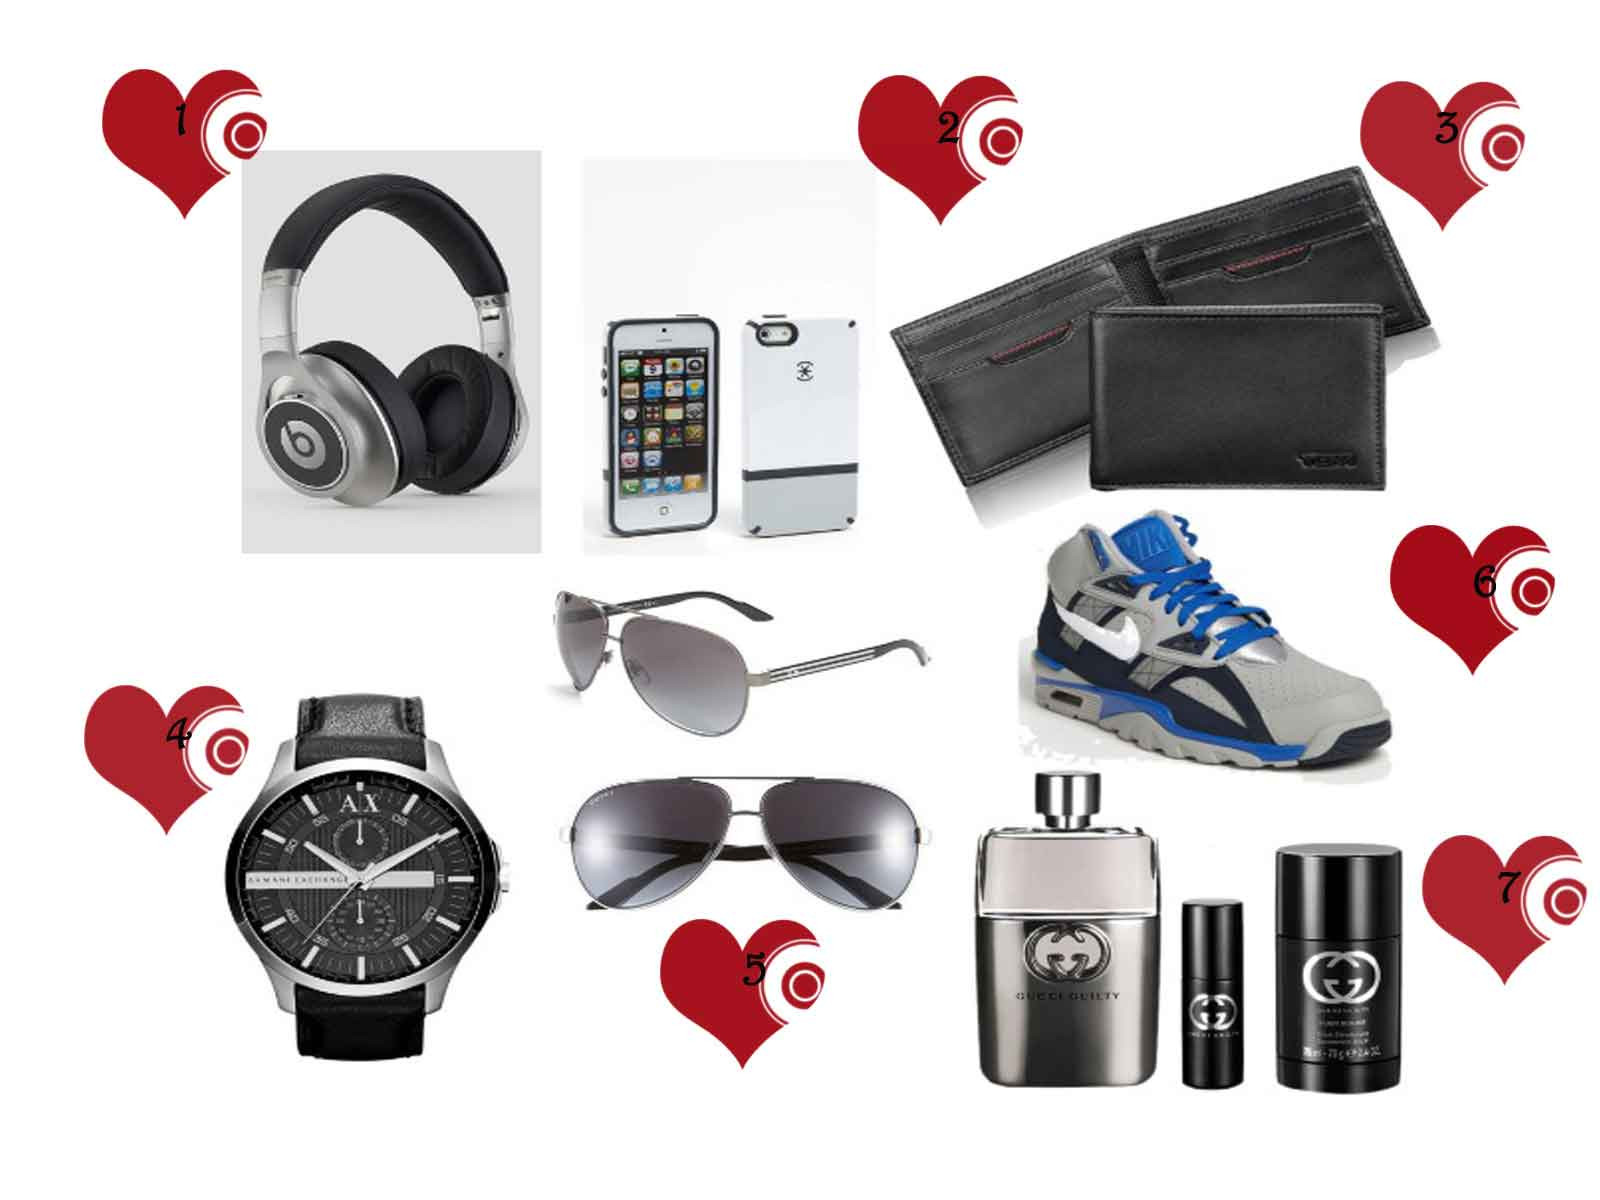 Valentines Gift For Him Ideas  Valentine s Day Gift Ideas For Her And Him